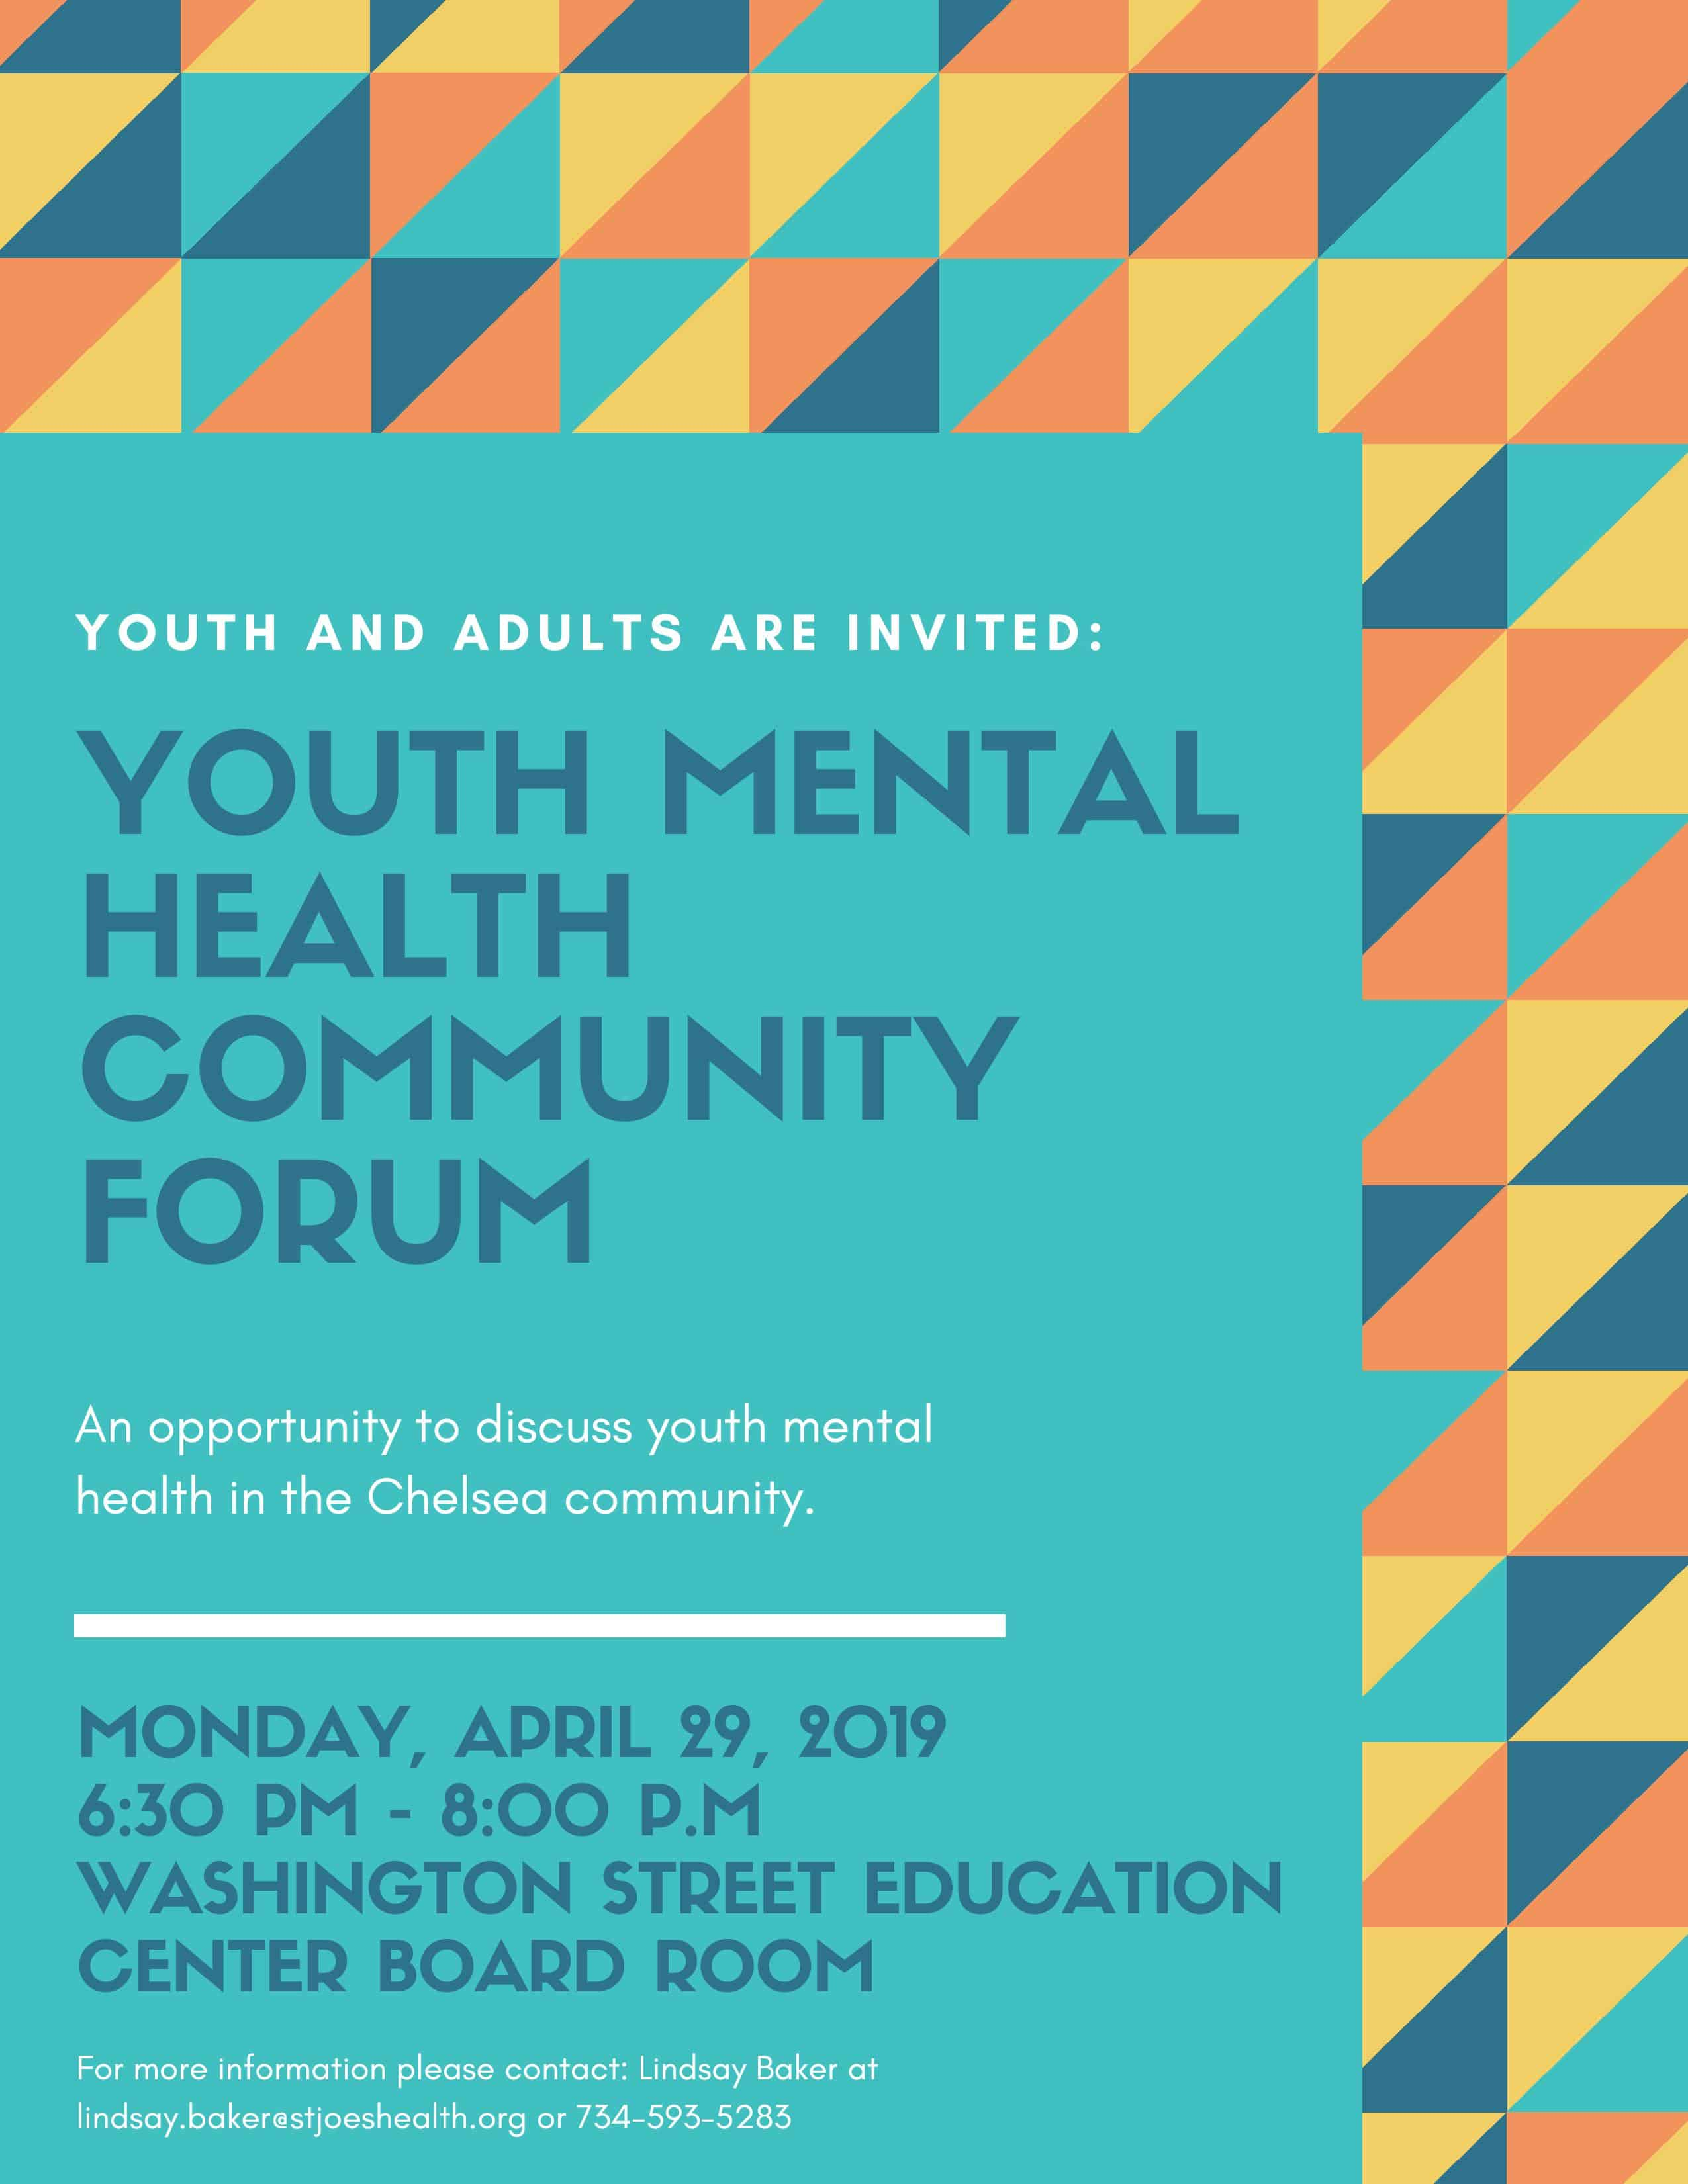 Community Forum on Youth Mental Health - April 29 - SRSLY Chelsea